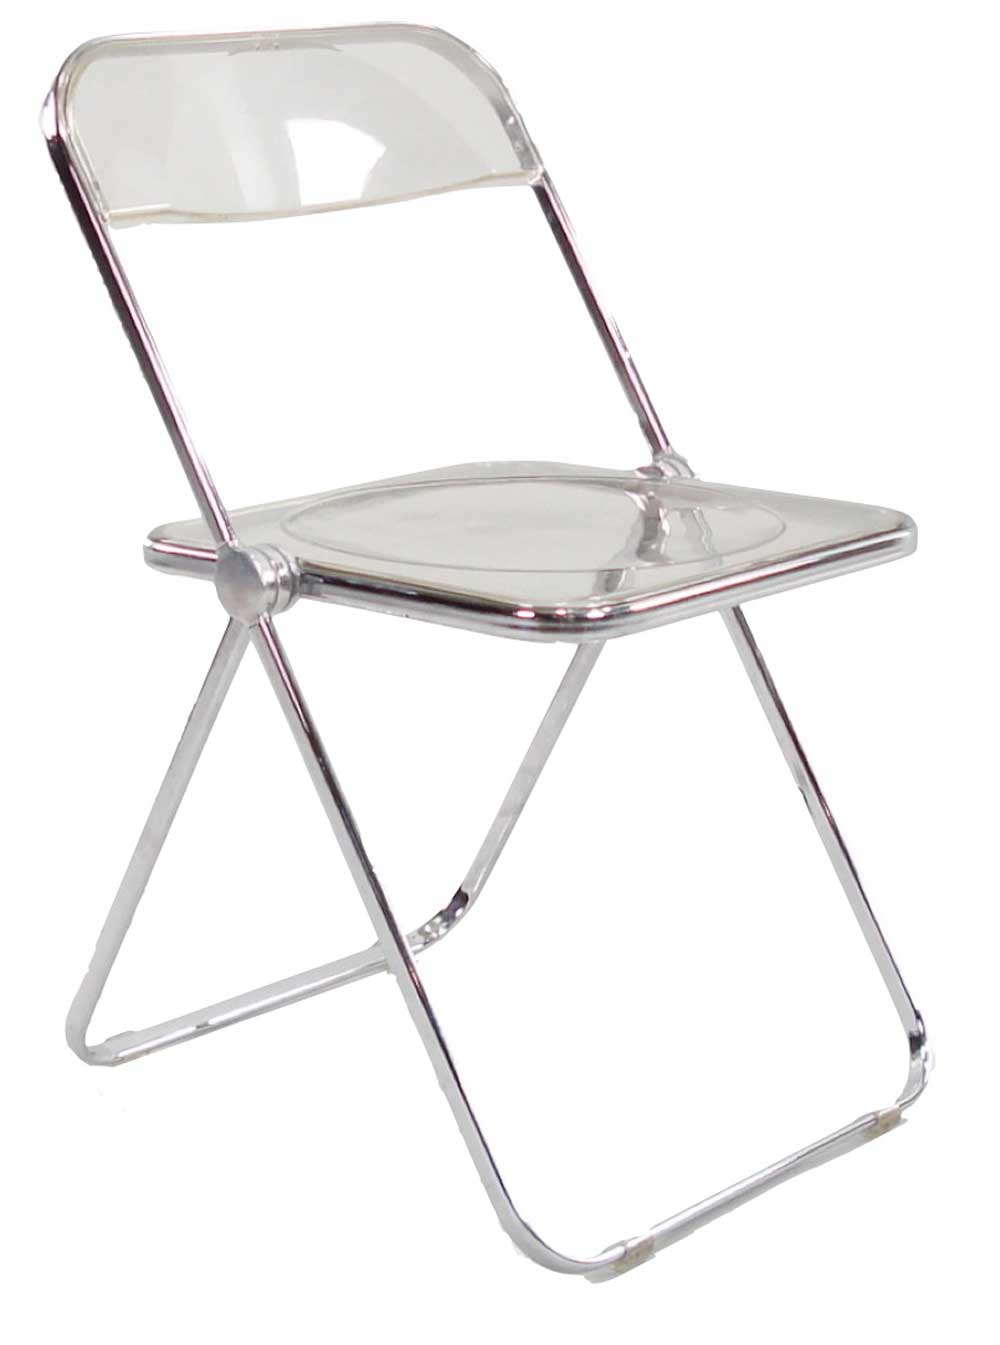 Lucite Folding Chairs for Perfect Comfort